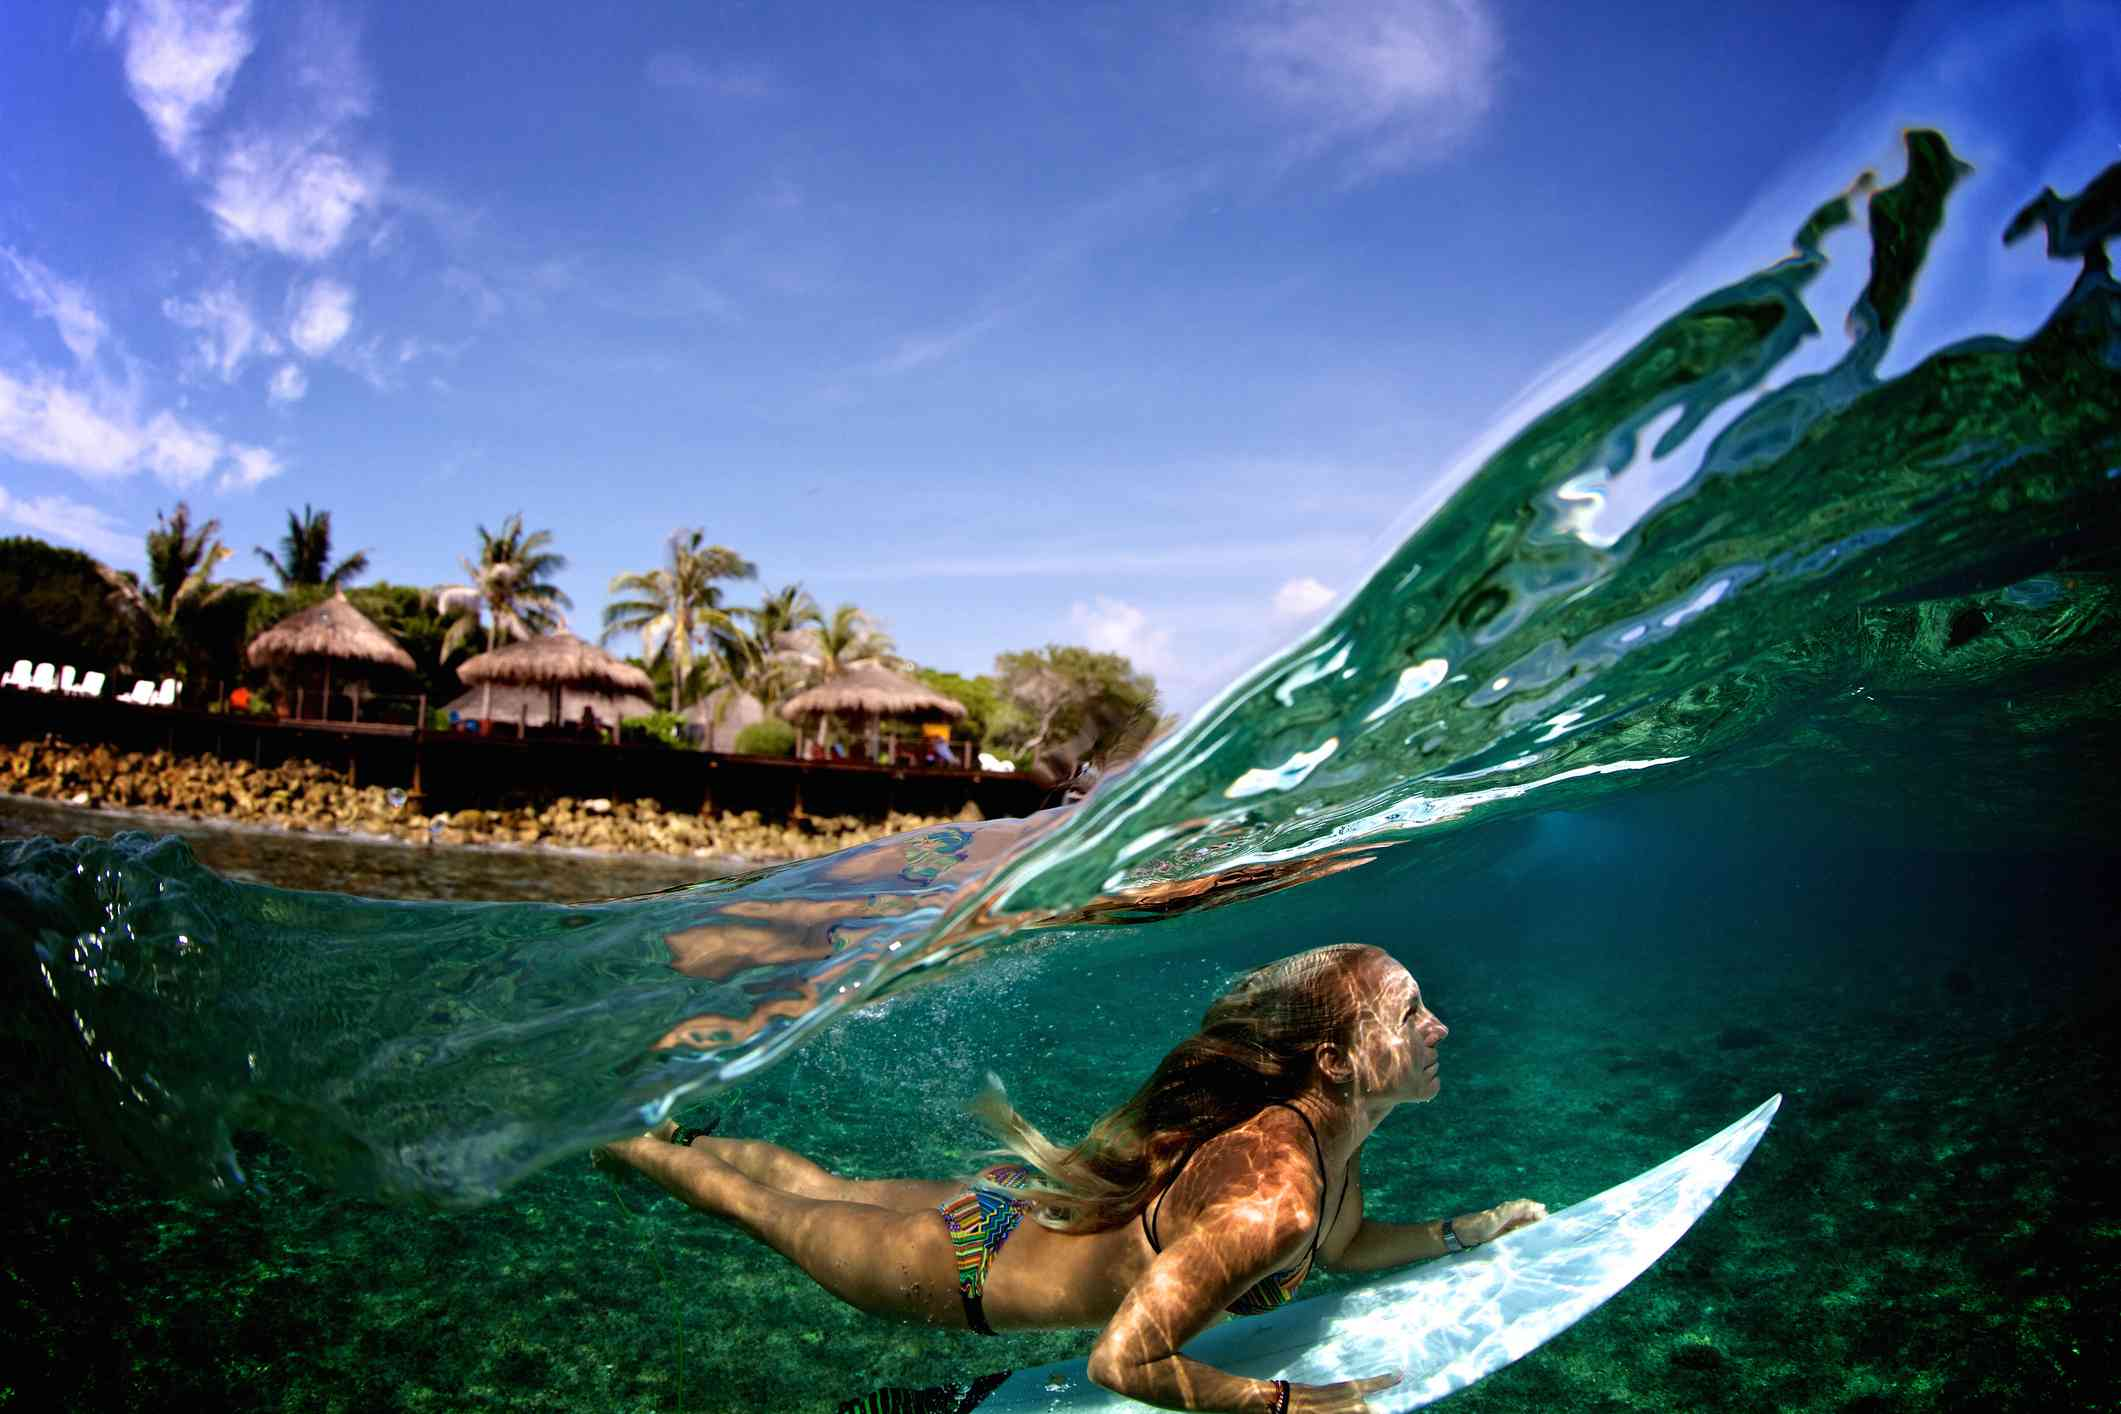 Surfing in the Maldives.